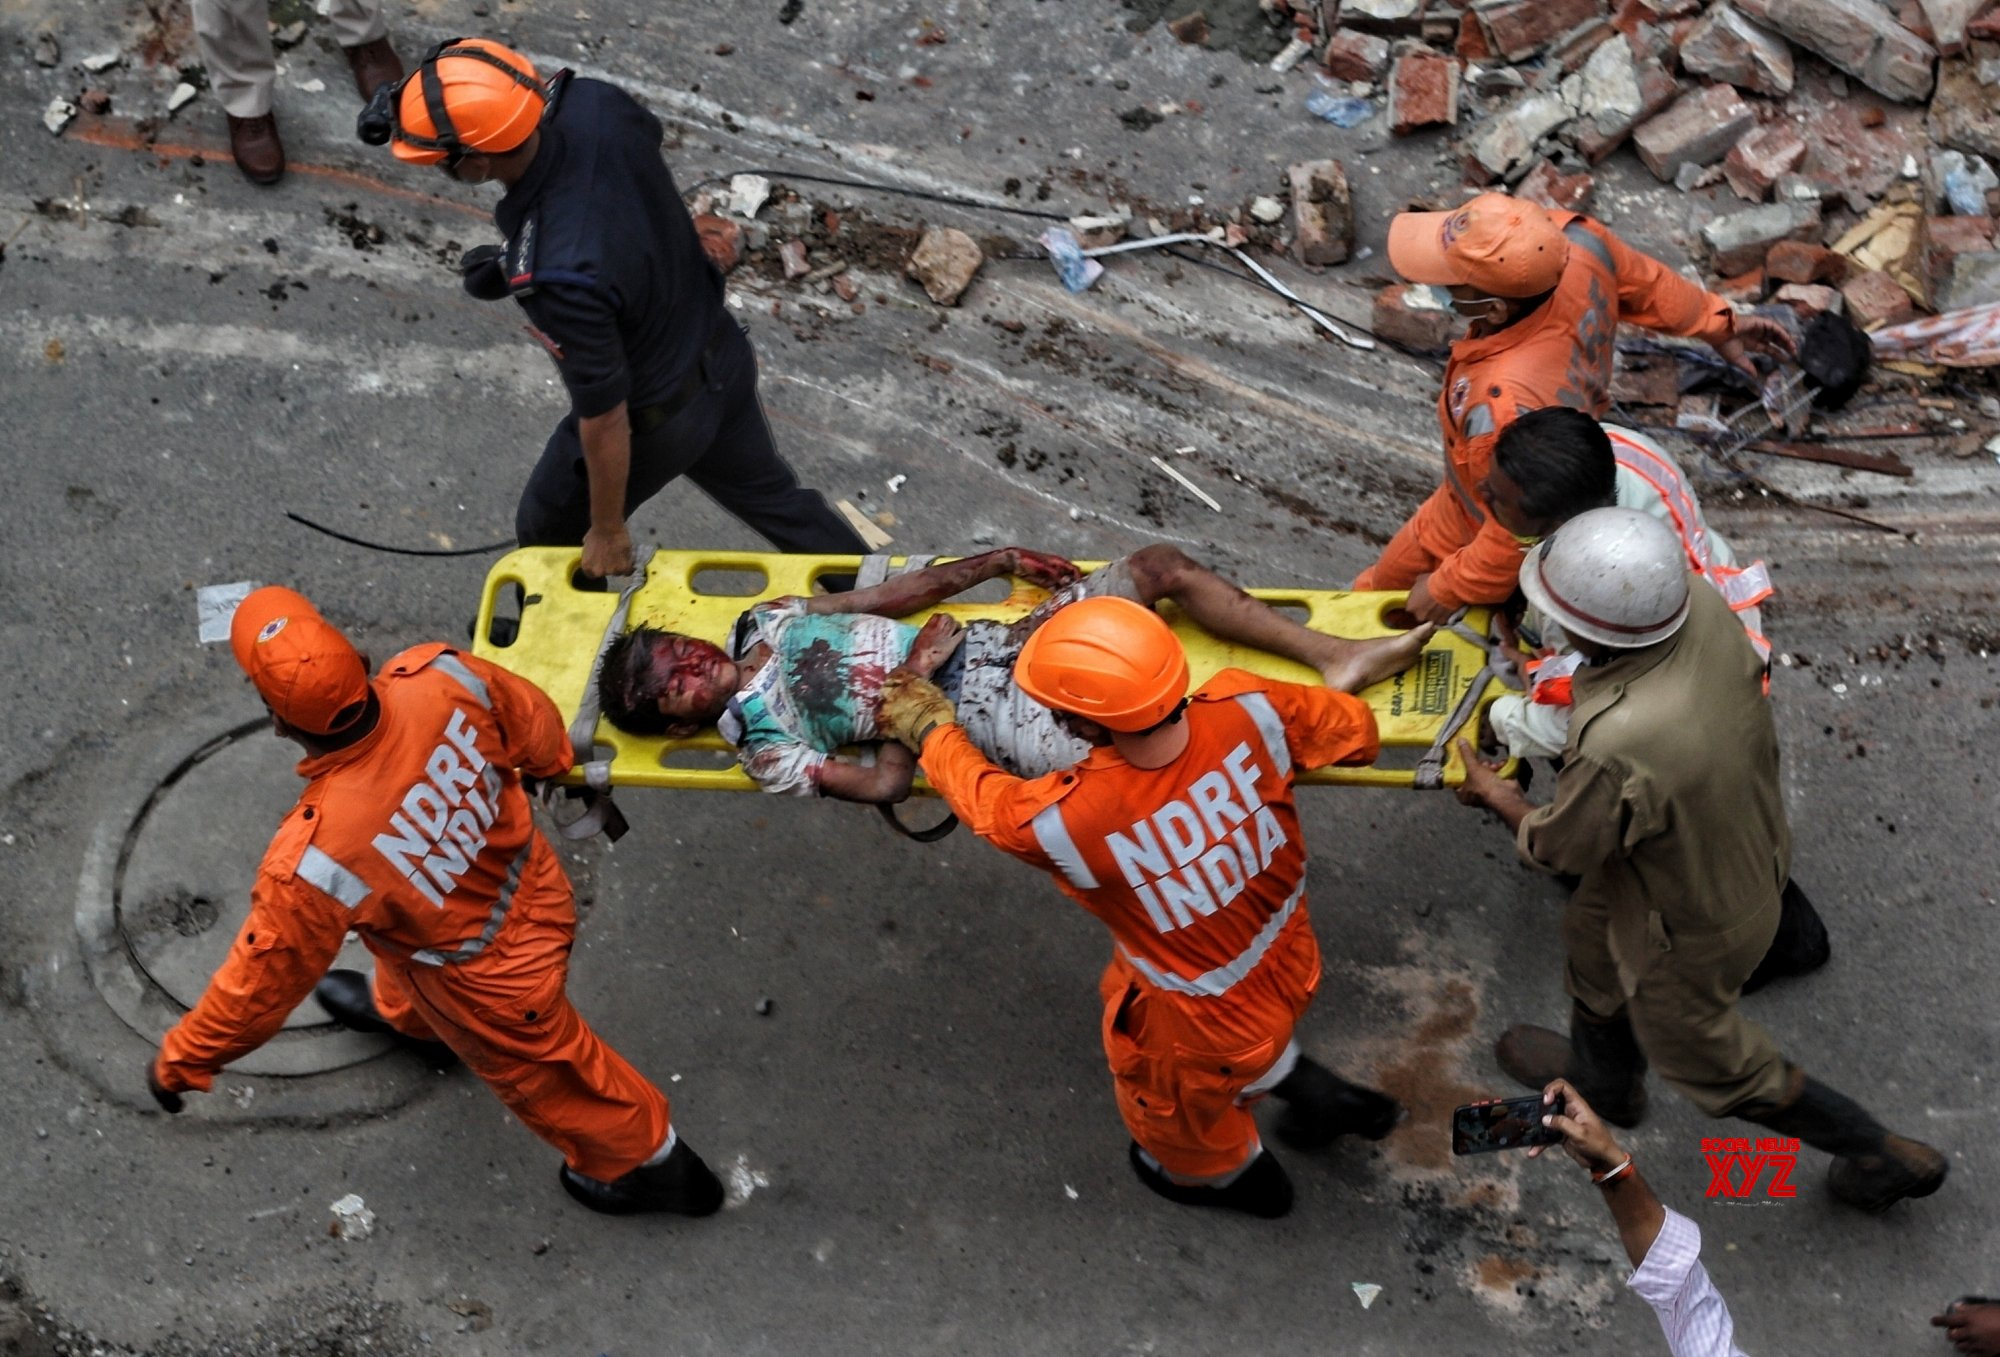 New Delhi : NDRF and Delhi Police personnel carried out a rescue operation after a four - storey building collapsed in Sabzi Mandi area, the main market in New Delhi #Gallery